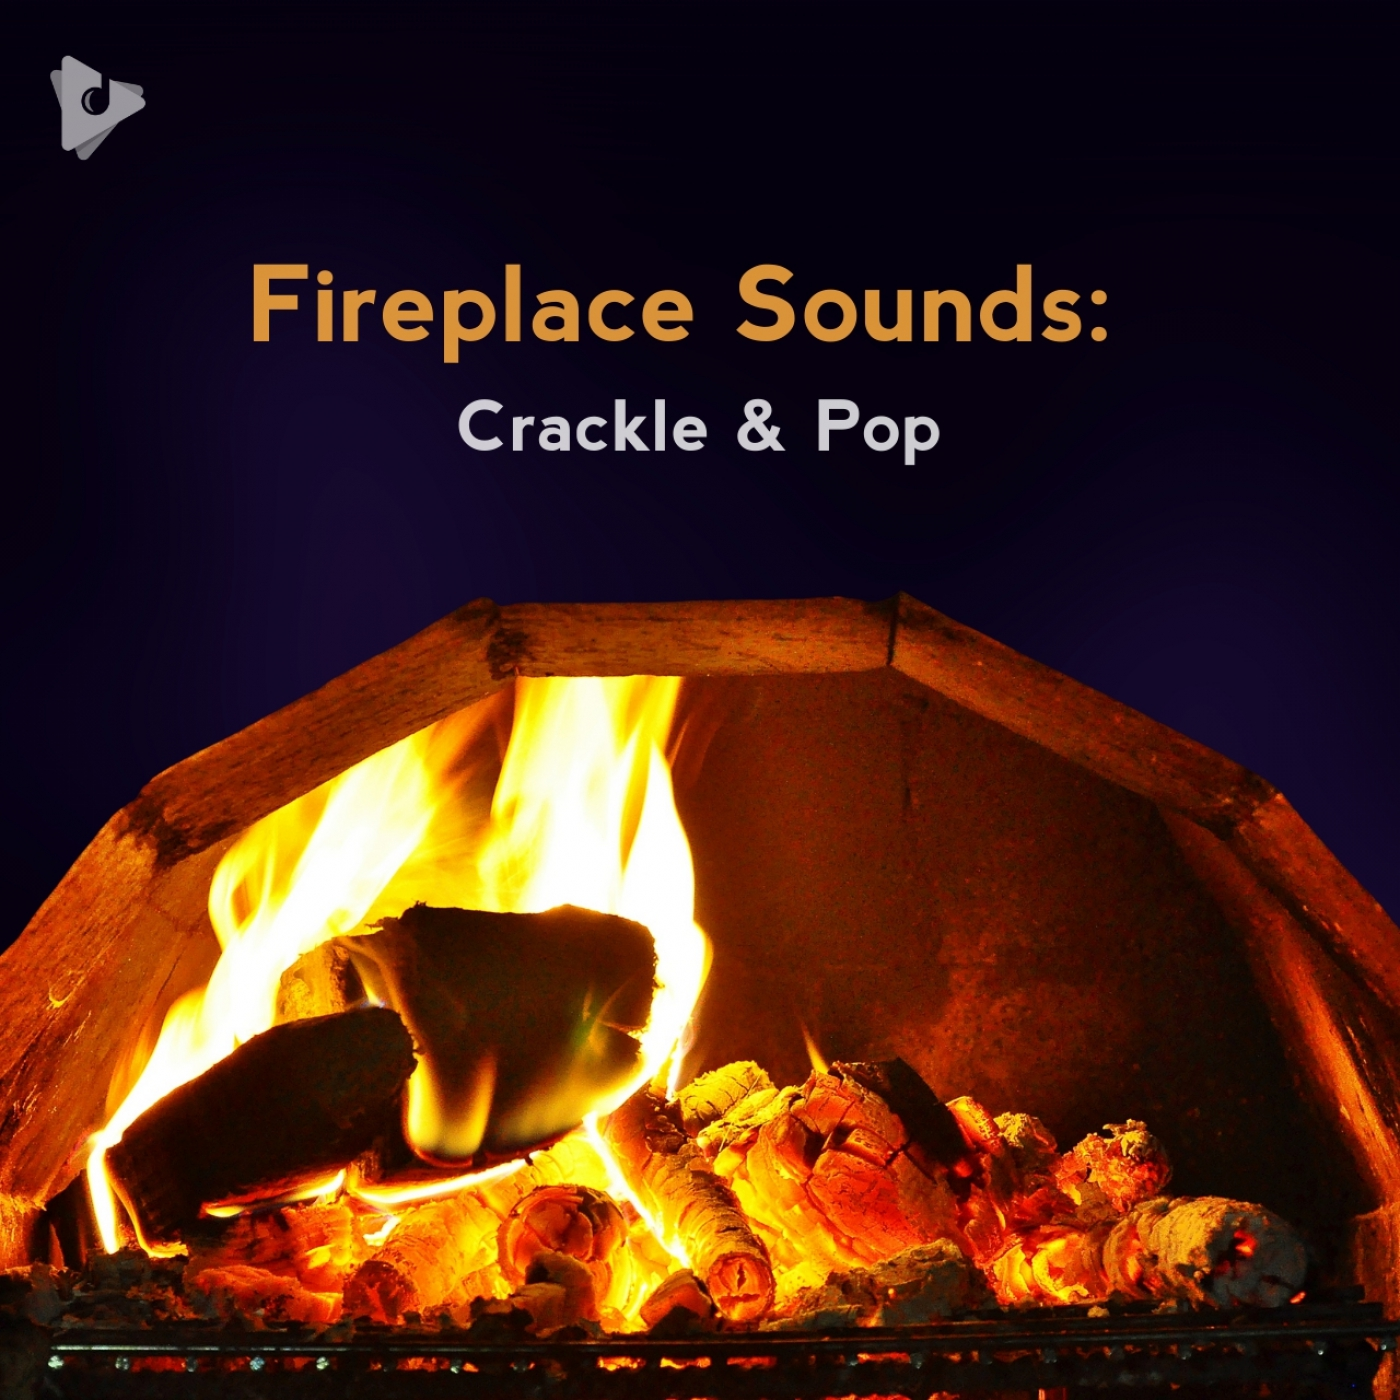 Fireplace Sounds: Crackle & Pop